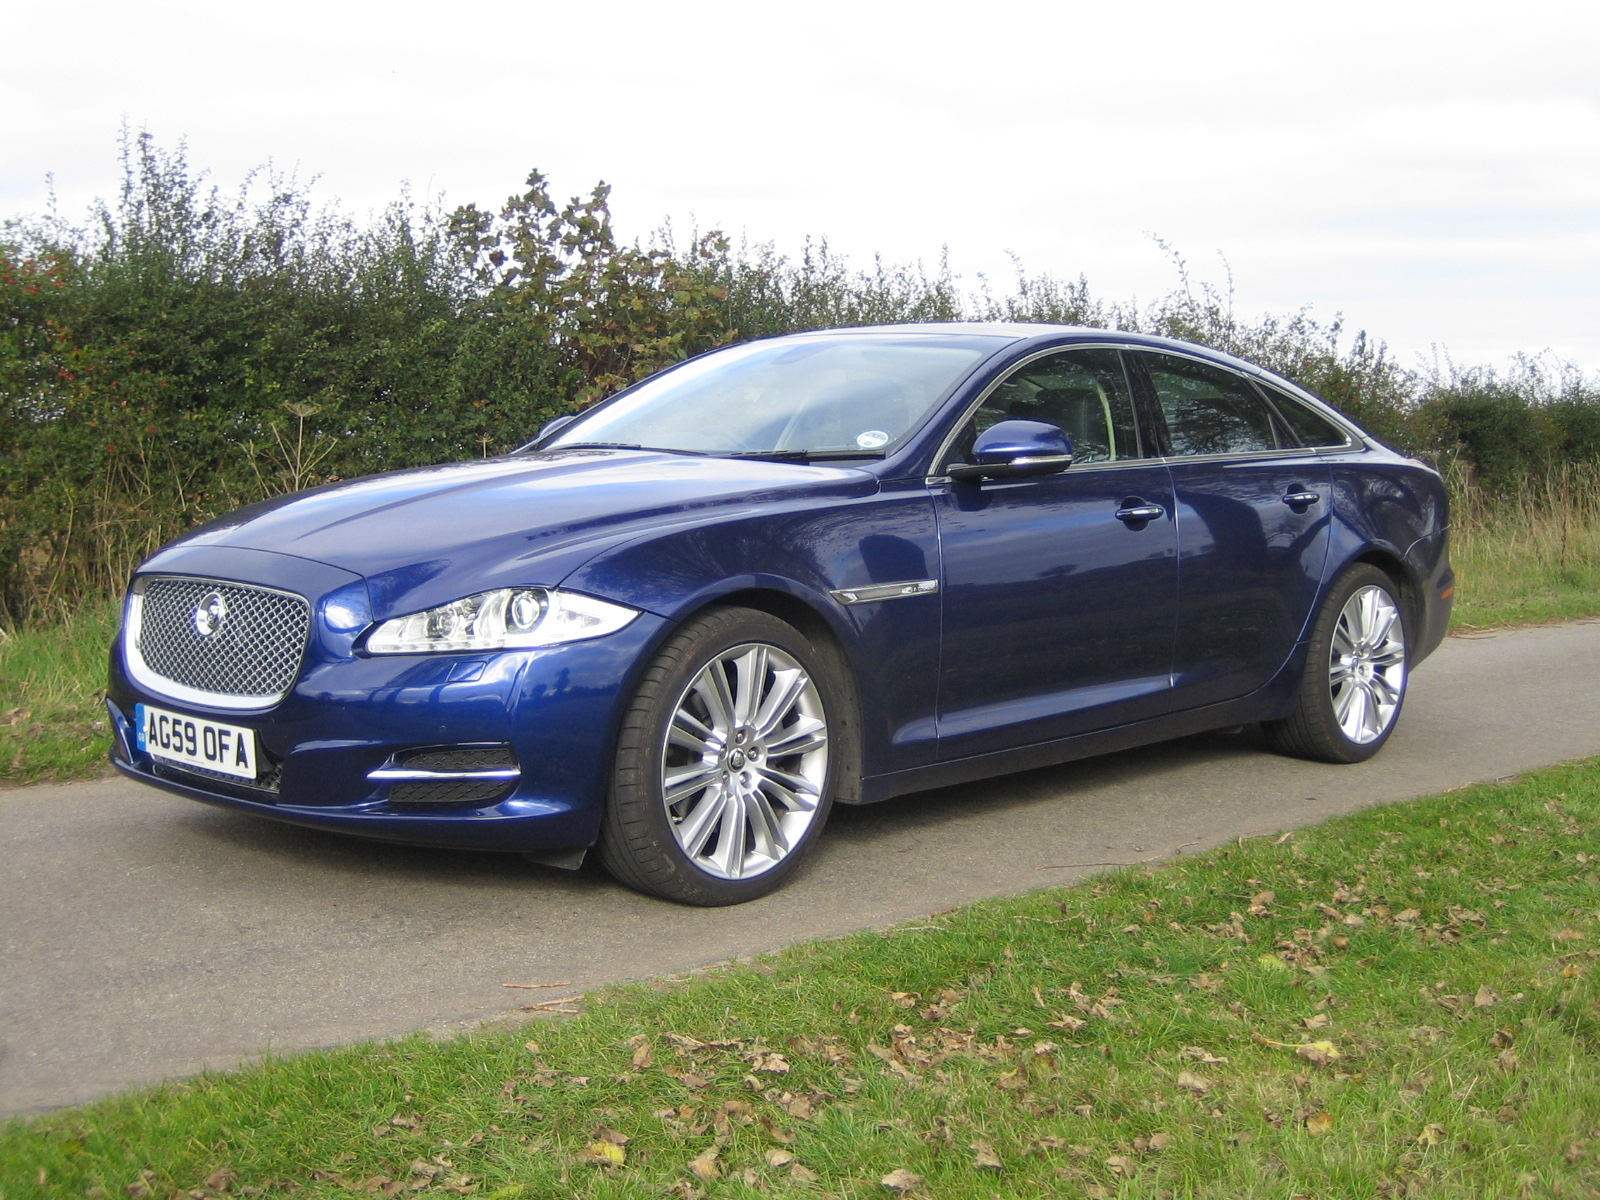 Jaguar-XJ-3.0D-Portfolio-51 Great Description About 2010 Jaguar Xj for Sale